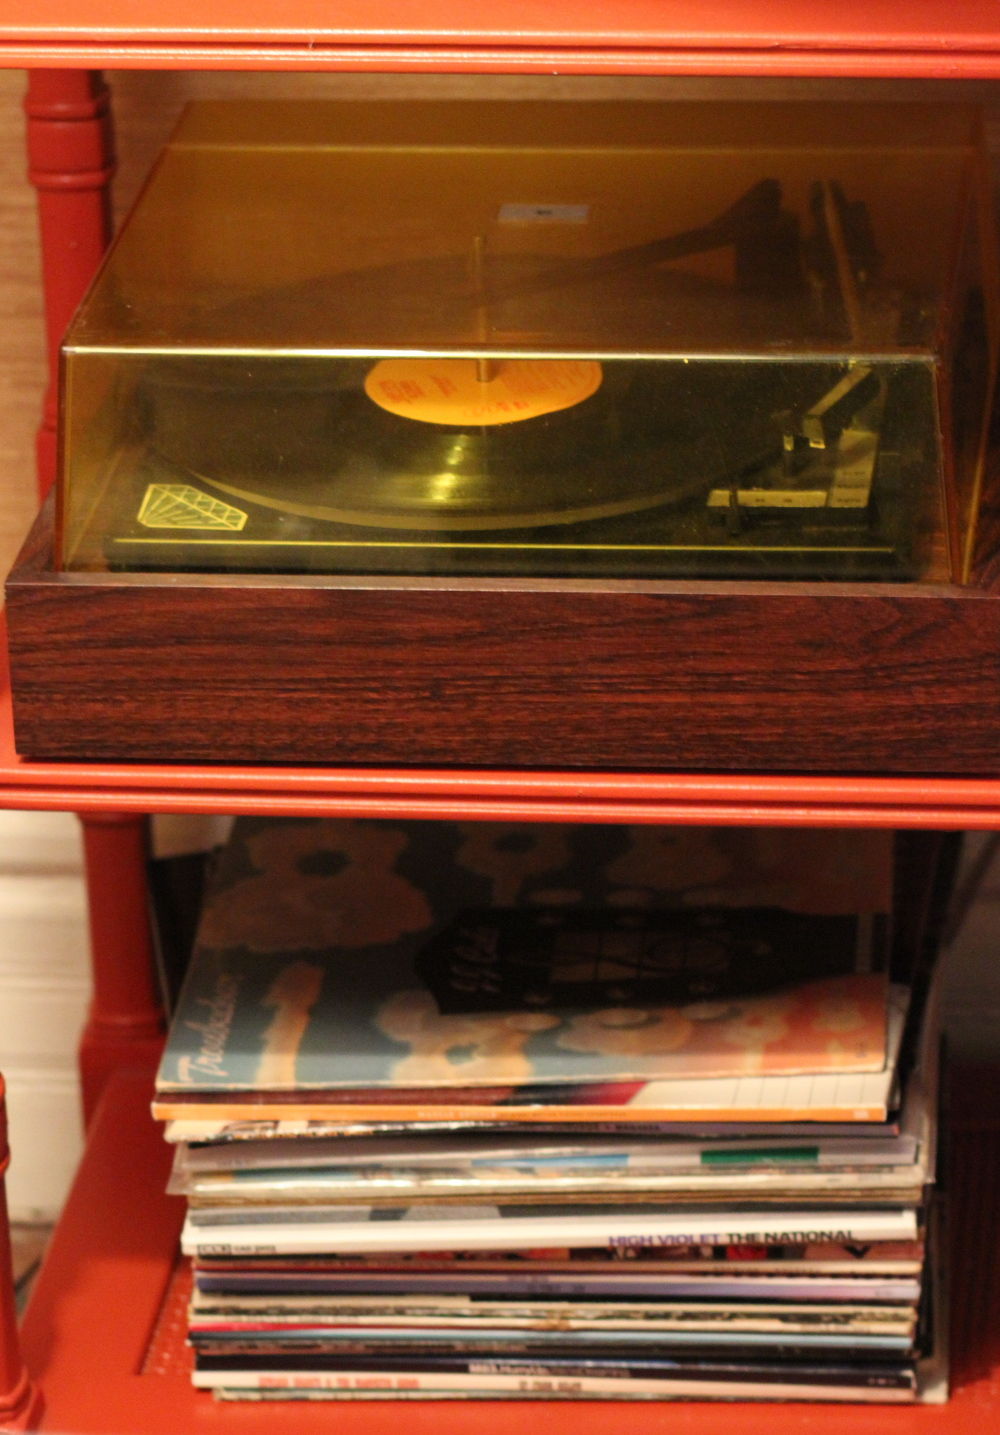 Kendall's grandparents record player